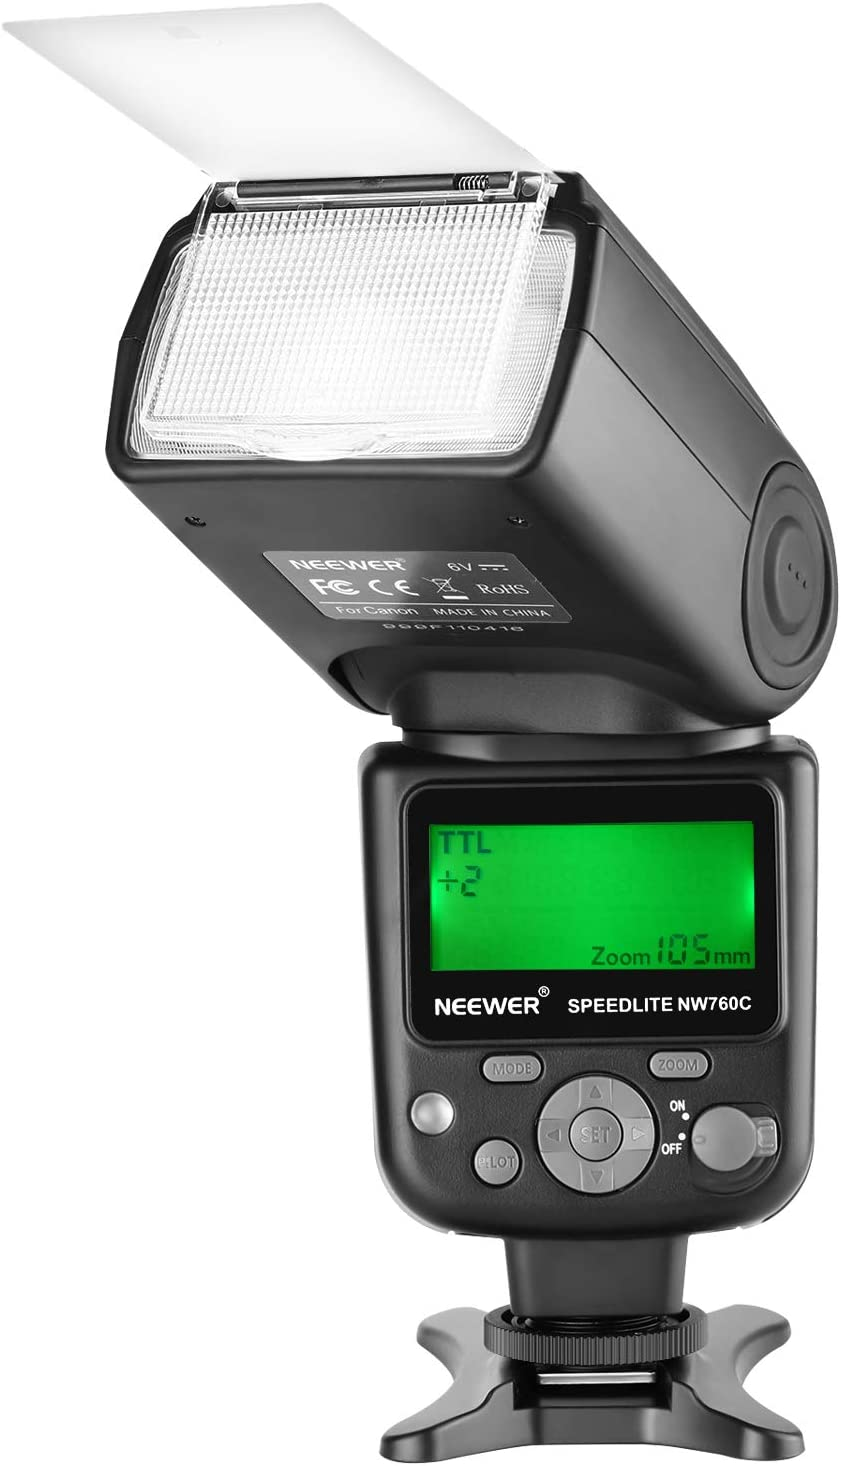 Neewer NW760 Remote TTL Flash Speedlite with LCD Display for Canon 7D Mark II, 5D Mark II III IV III IV 1300D 1200D 1100D 750D 700D 650D 600D 550D 500D 100D 80D 70D 60D and Other Canon DSLR Cameras